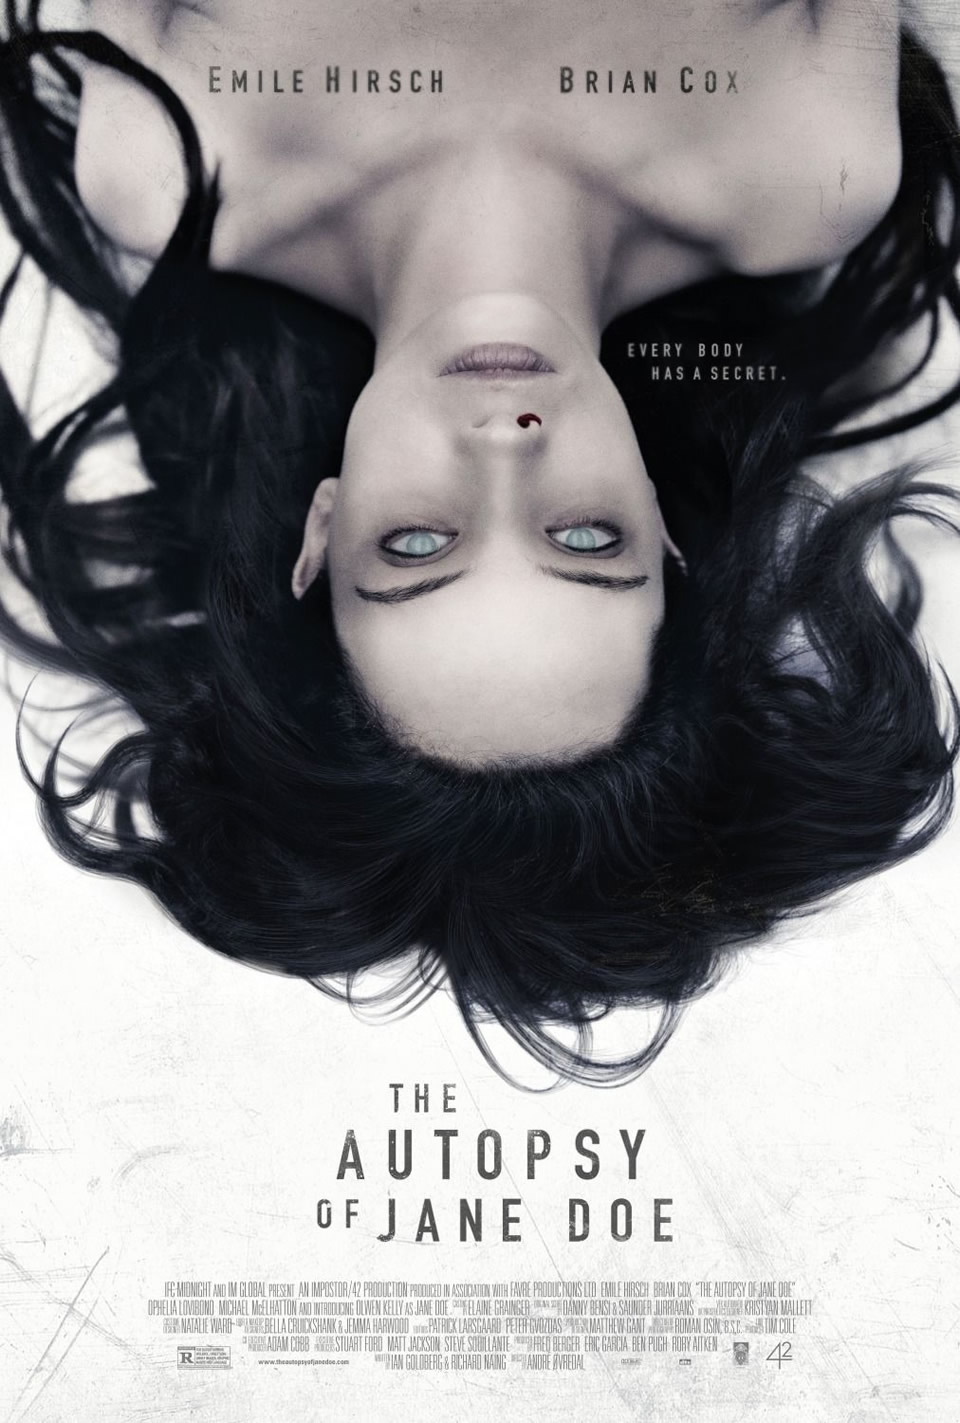 10 - The Autopsy of Jane Doe (2016)